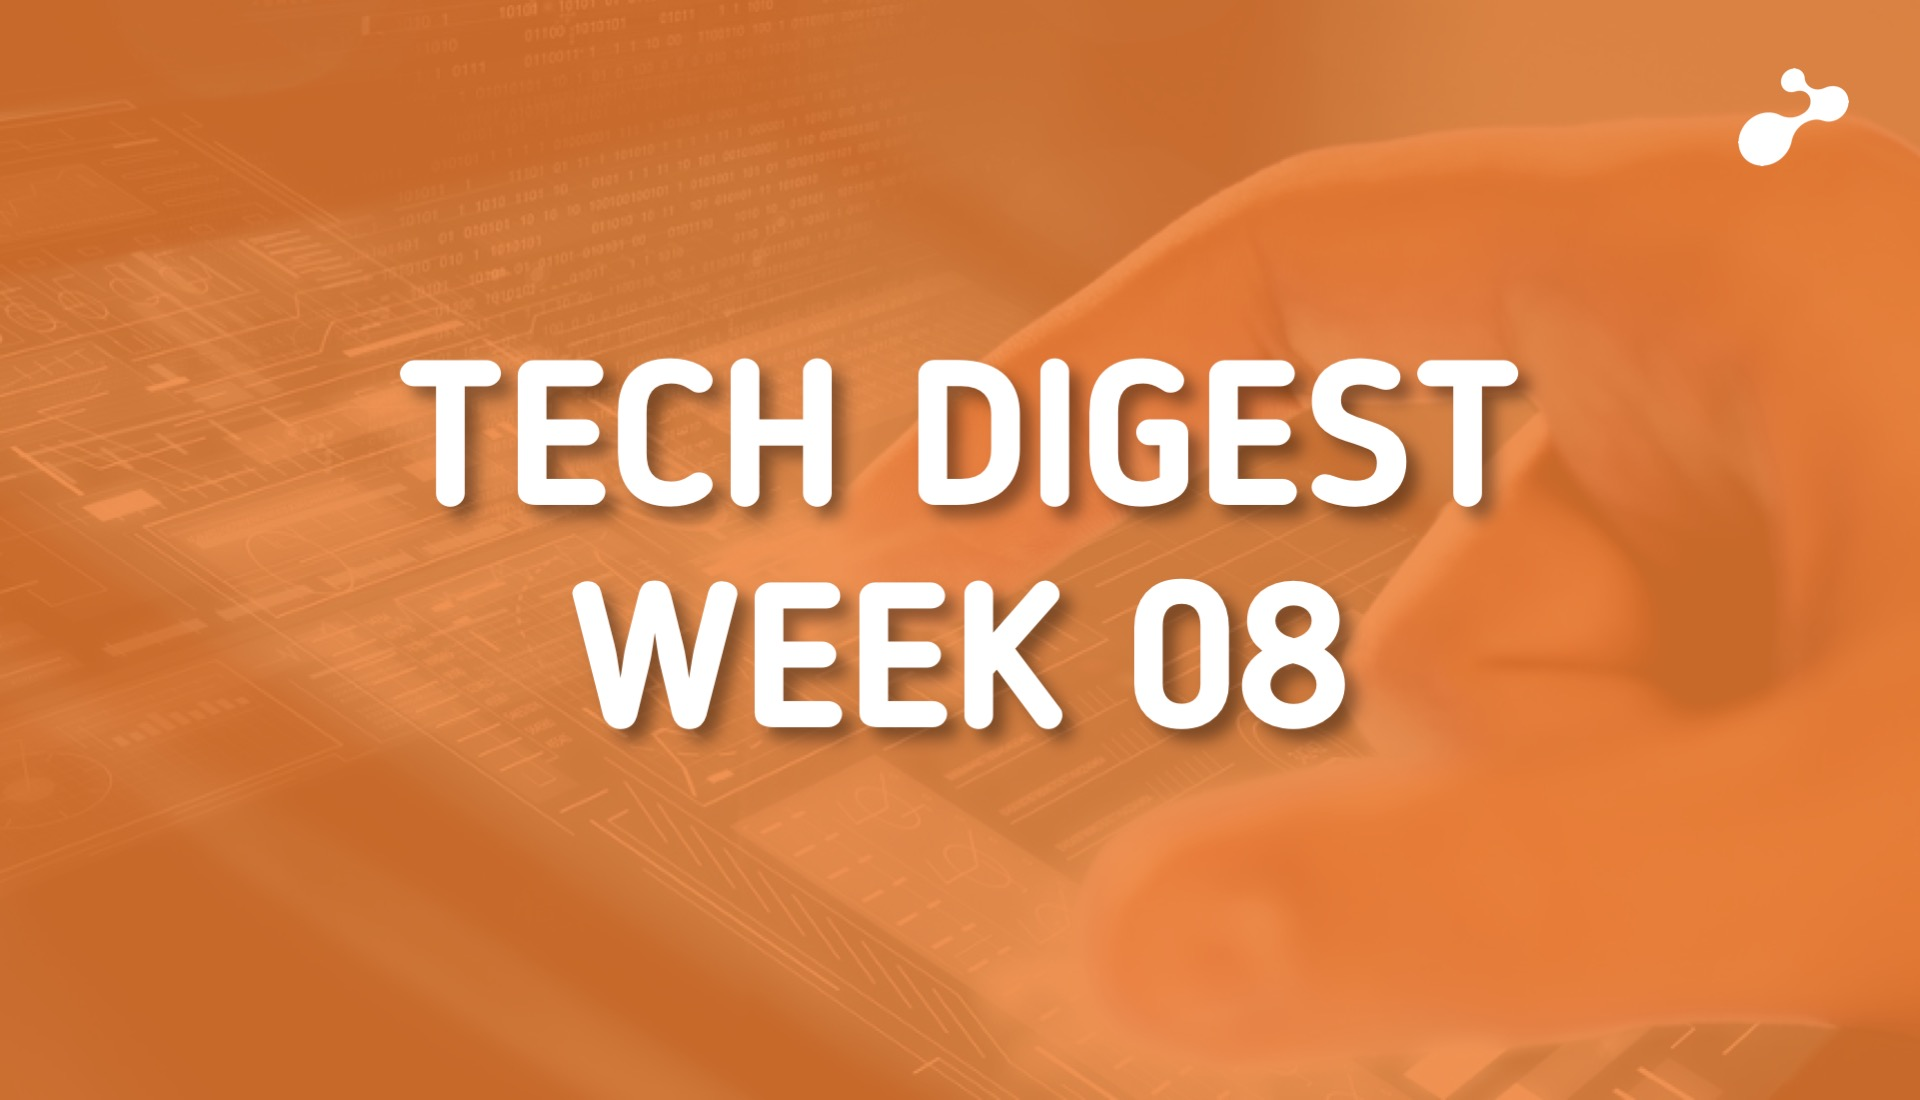 Tech stories handpicked for you - Week 08, 2019